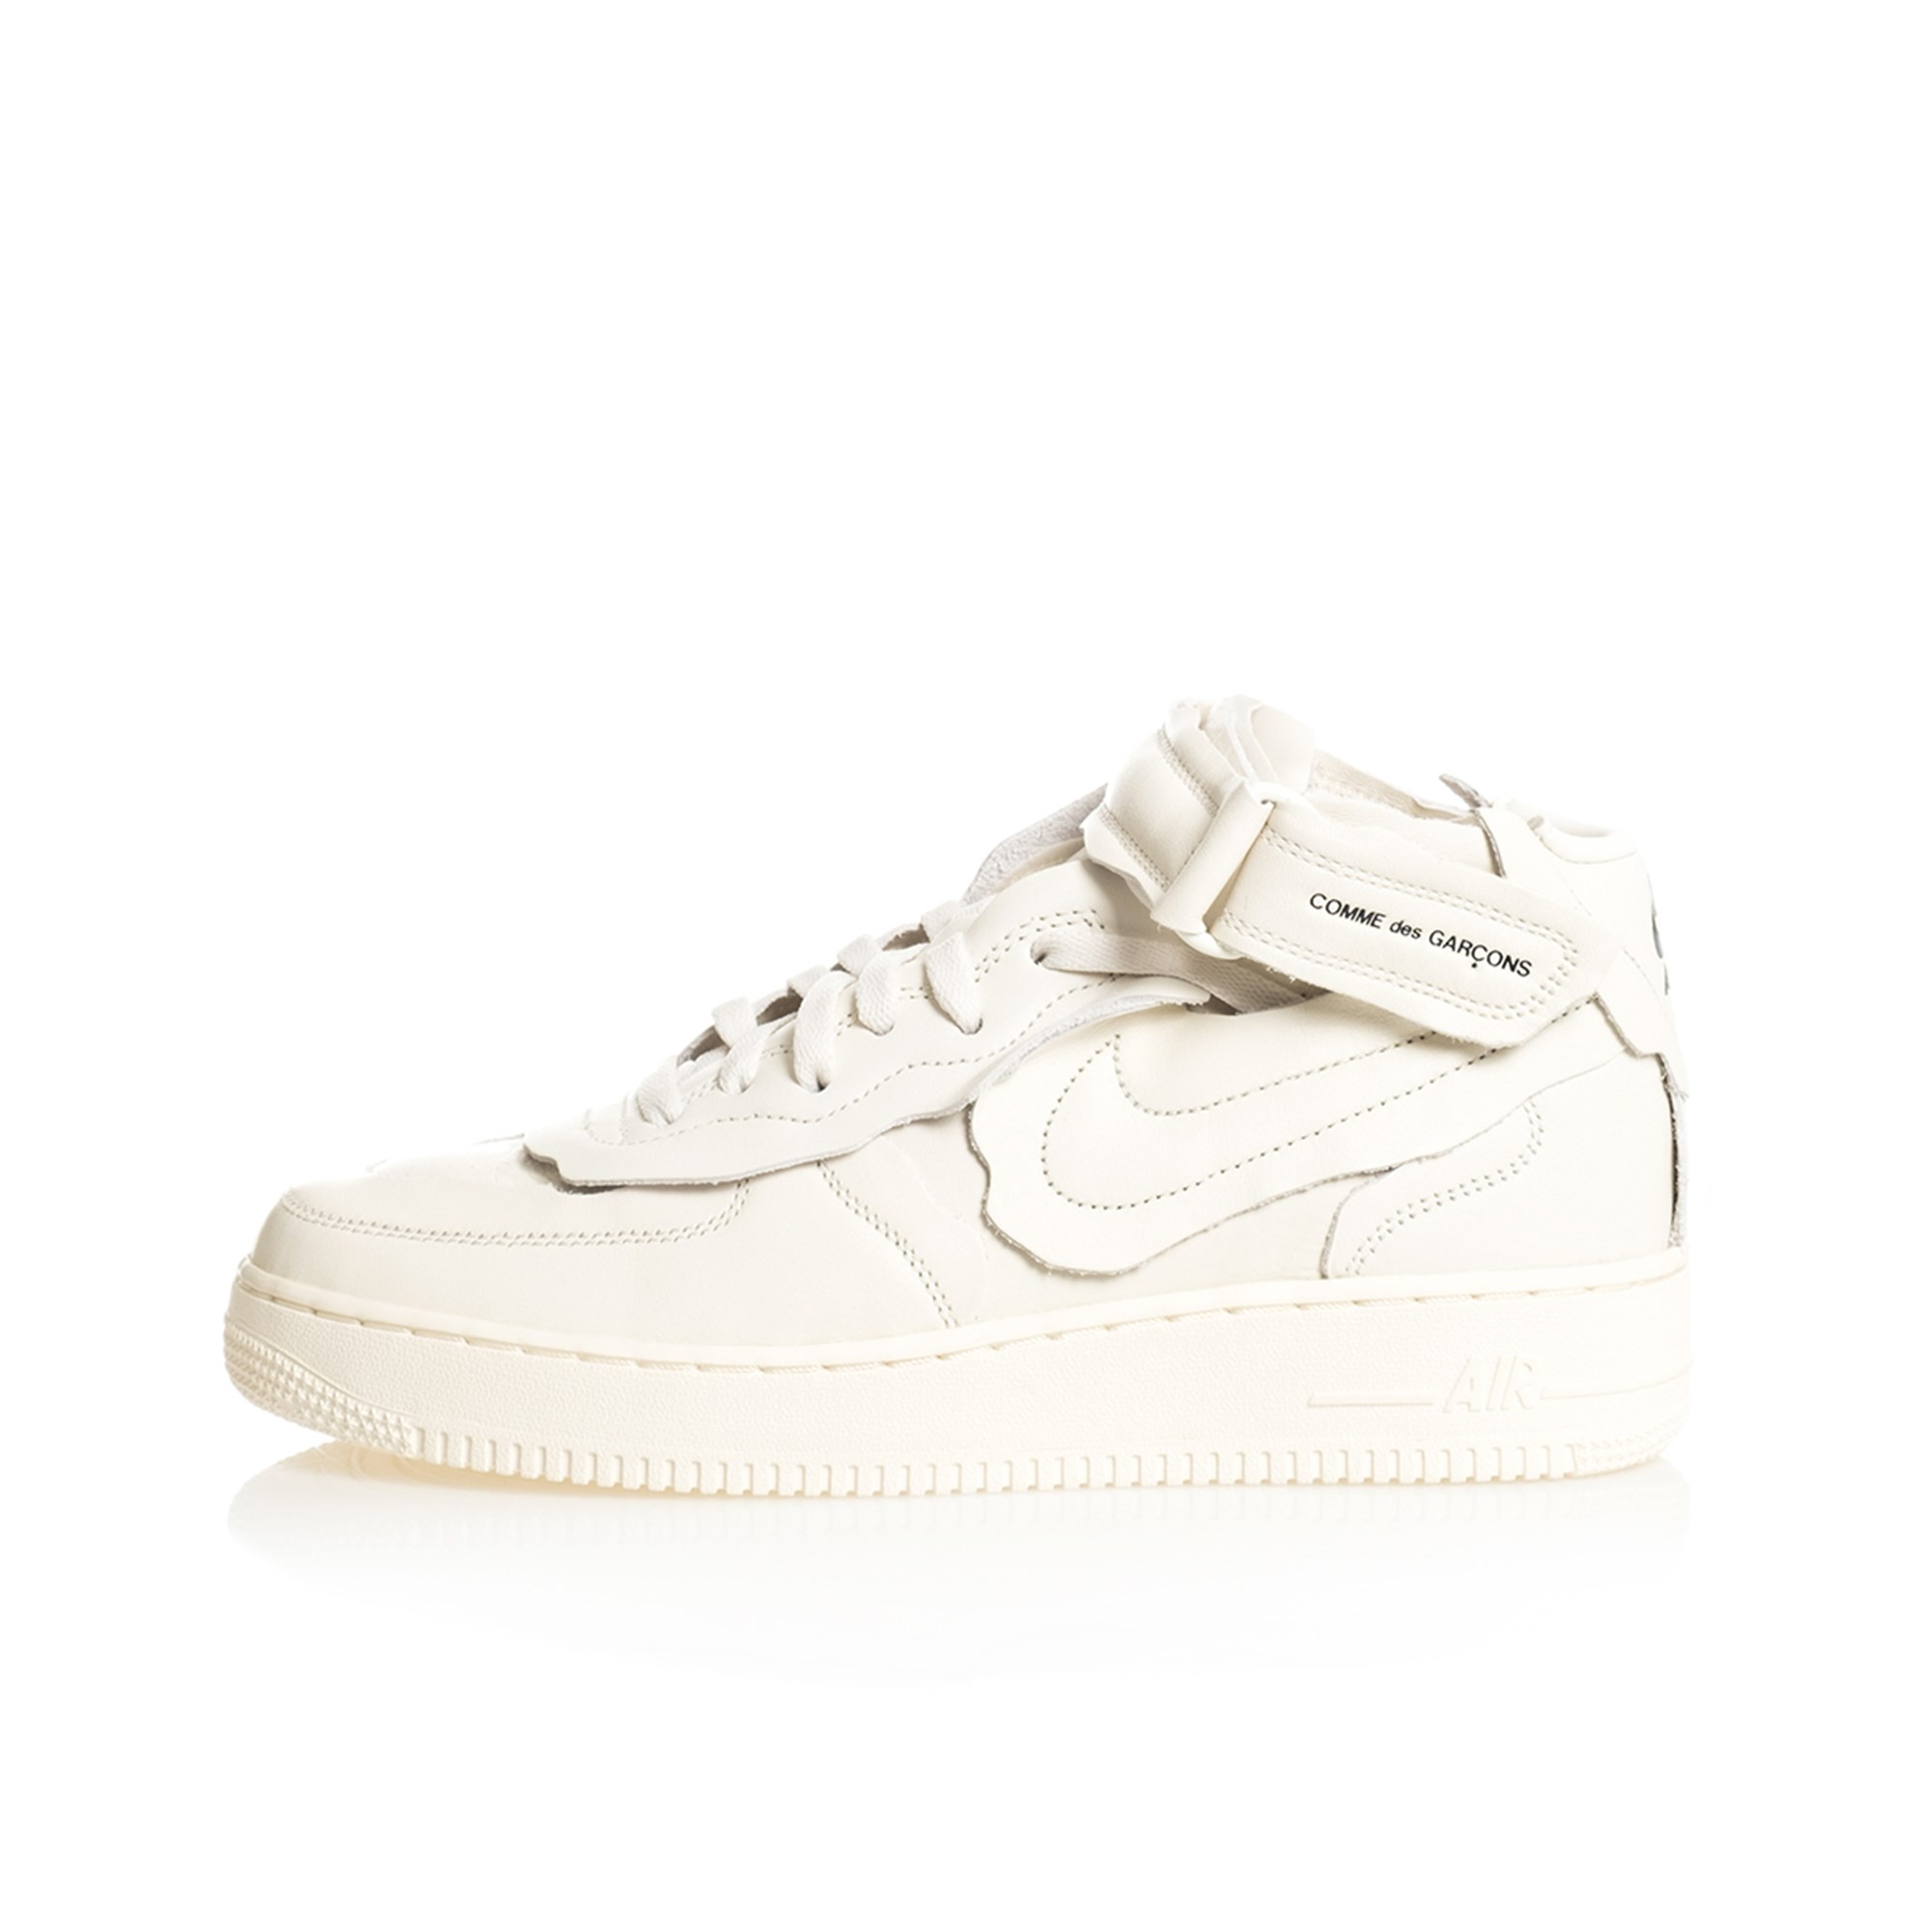 Nike Sneakers Uomo Air Force 1 Mid Comme Des Garcons Dc3601.100 In ...